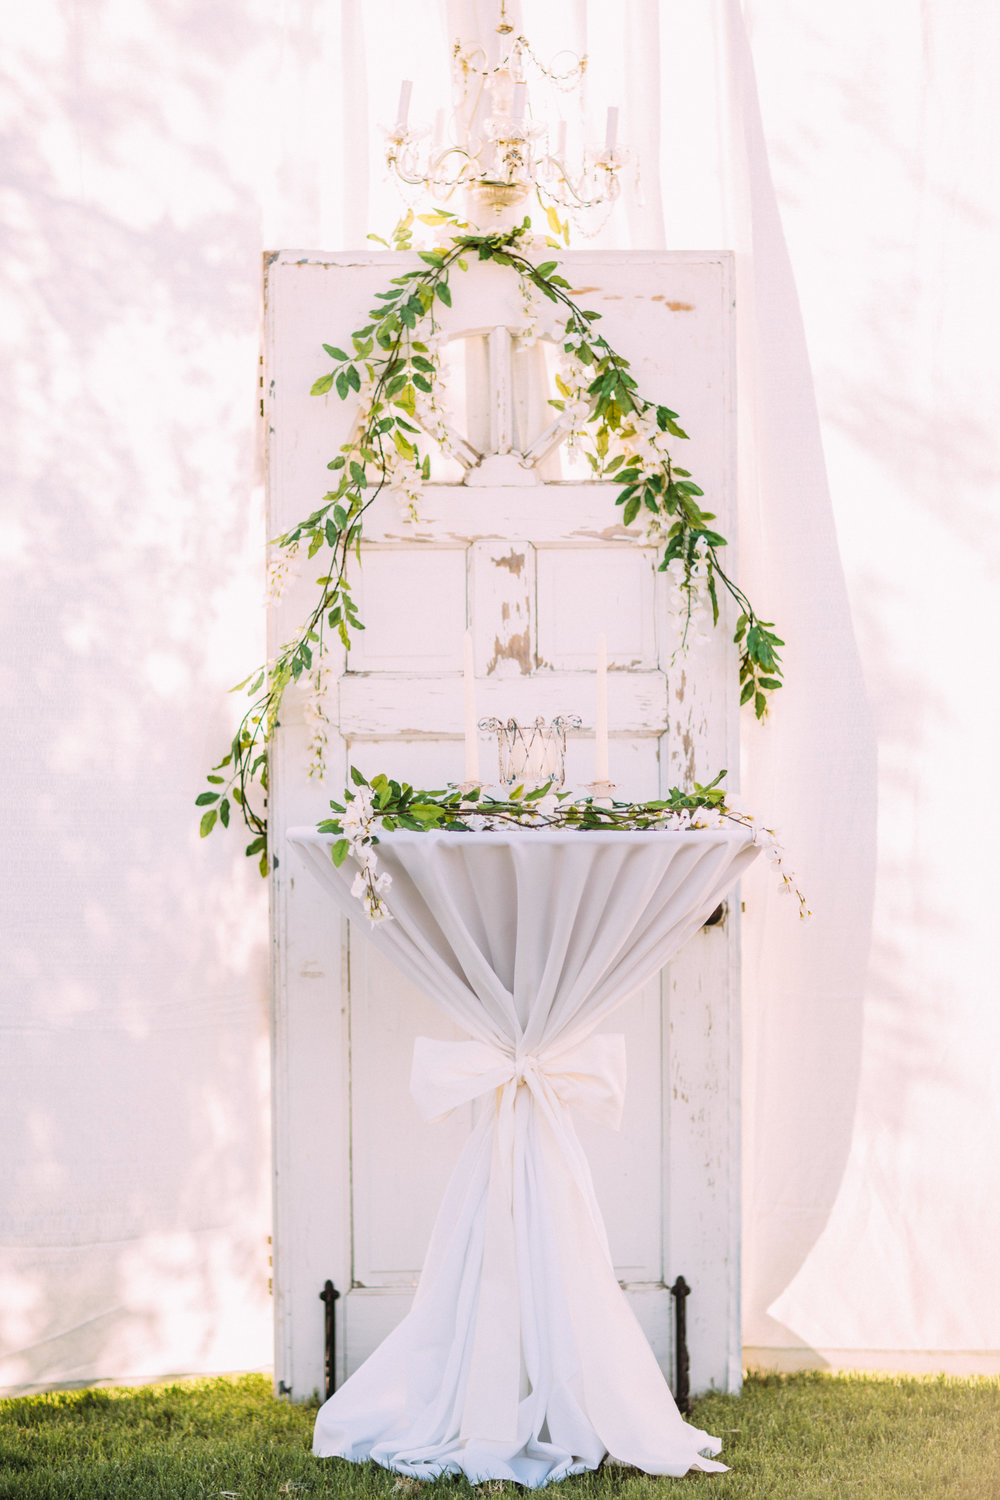 Backyard Wedding at Bride's Childhood Home in Gilbert, Arizona- Konsider It Done- AZ Arizona Wedding & Event Planner, Designer, Coordinator Planning in Scottsdale, Phoenix, Paradise Valley, Tempe, Gilbert, Mesa, Chandler, Tucson, Sedona